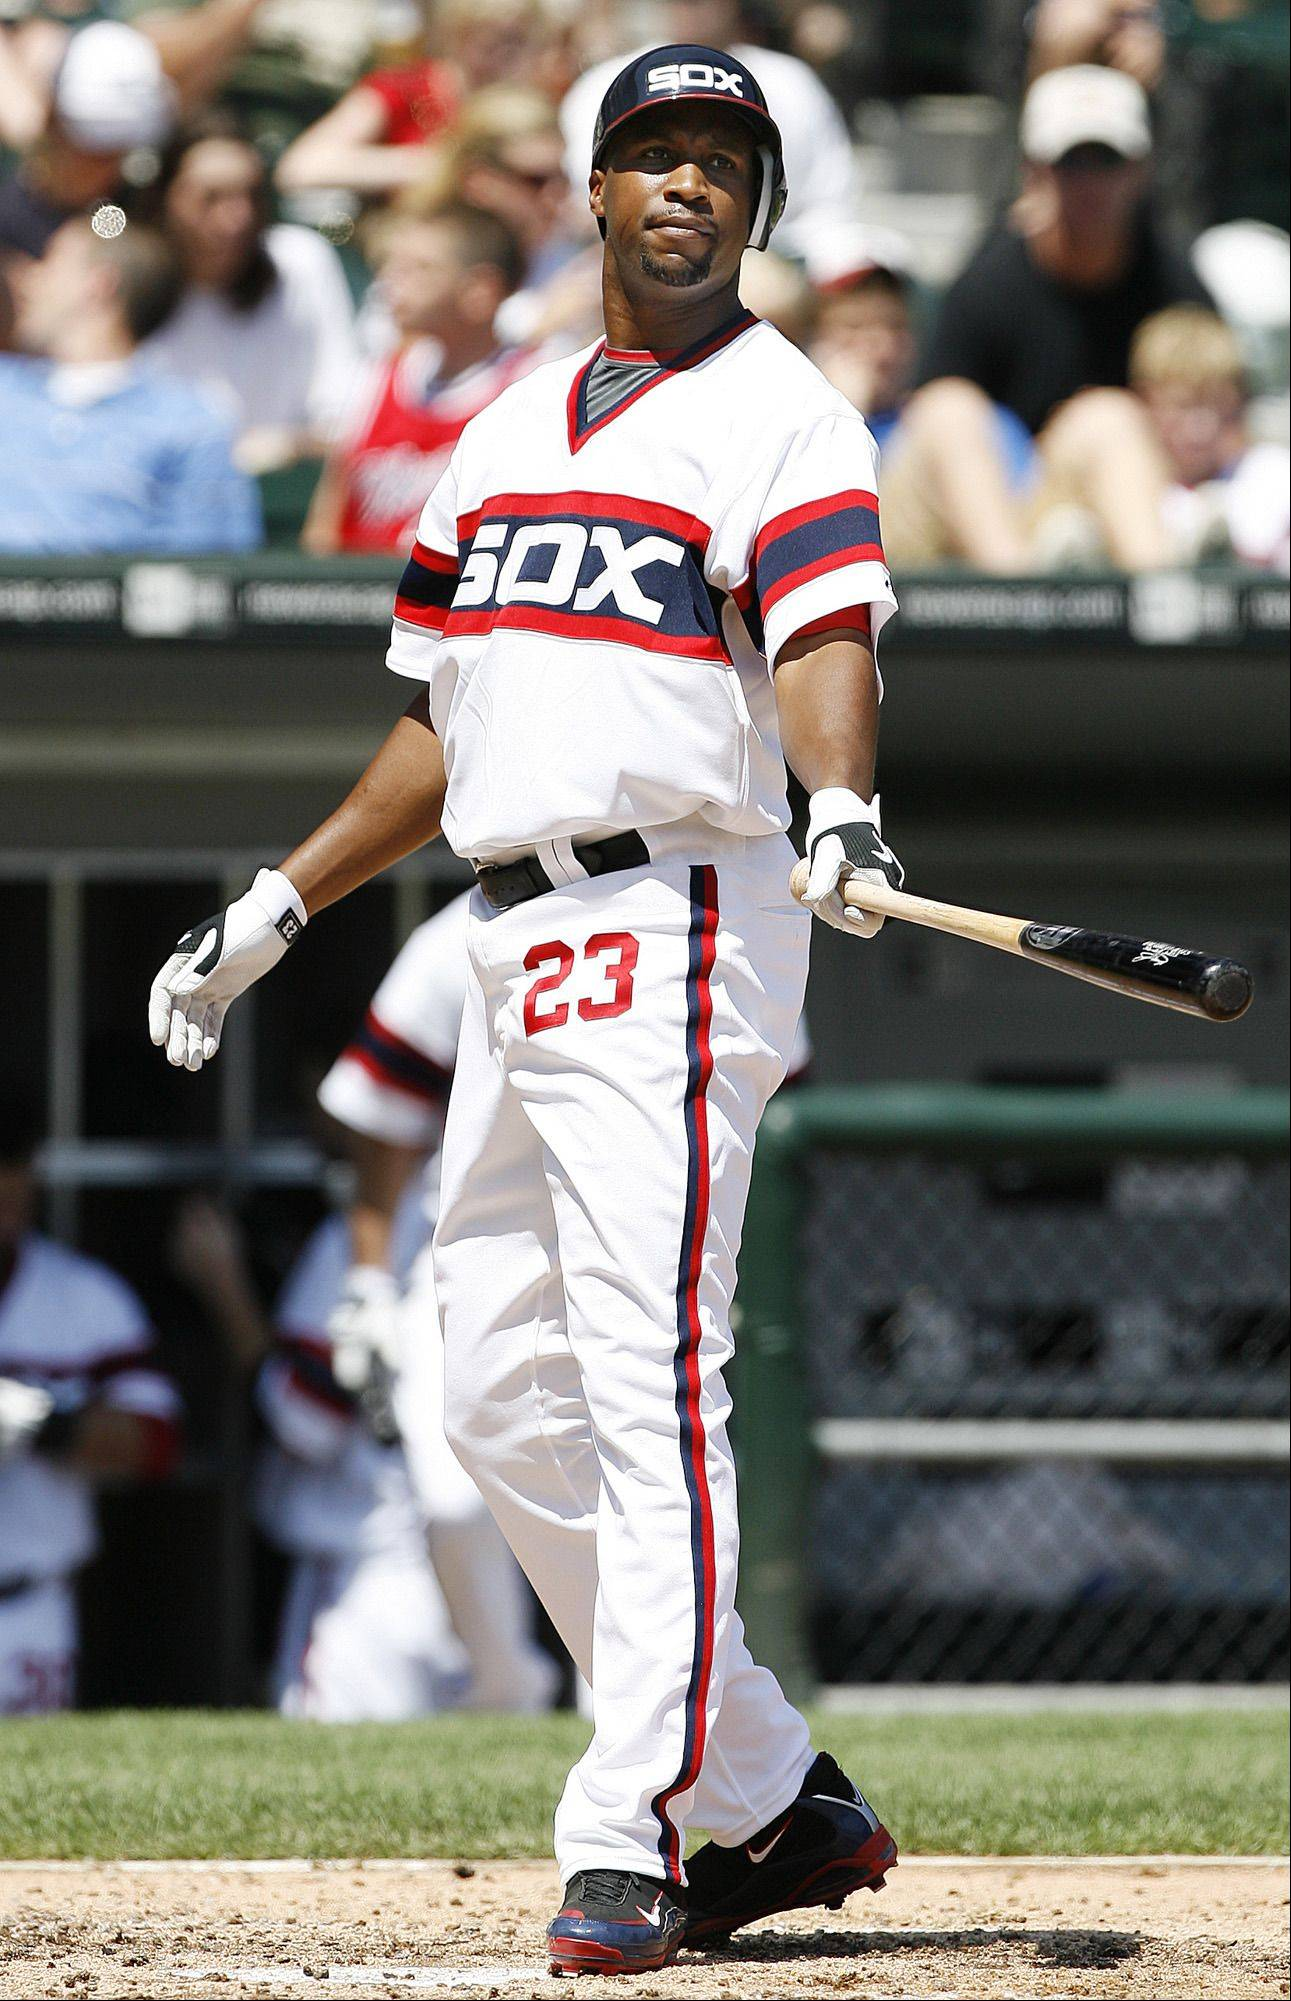 Chicago White Sox's Jermaine Dye.